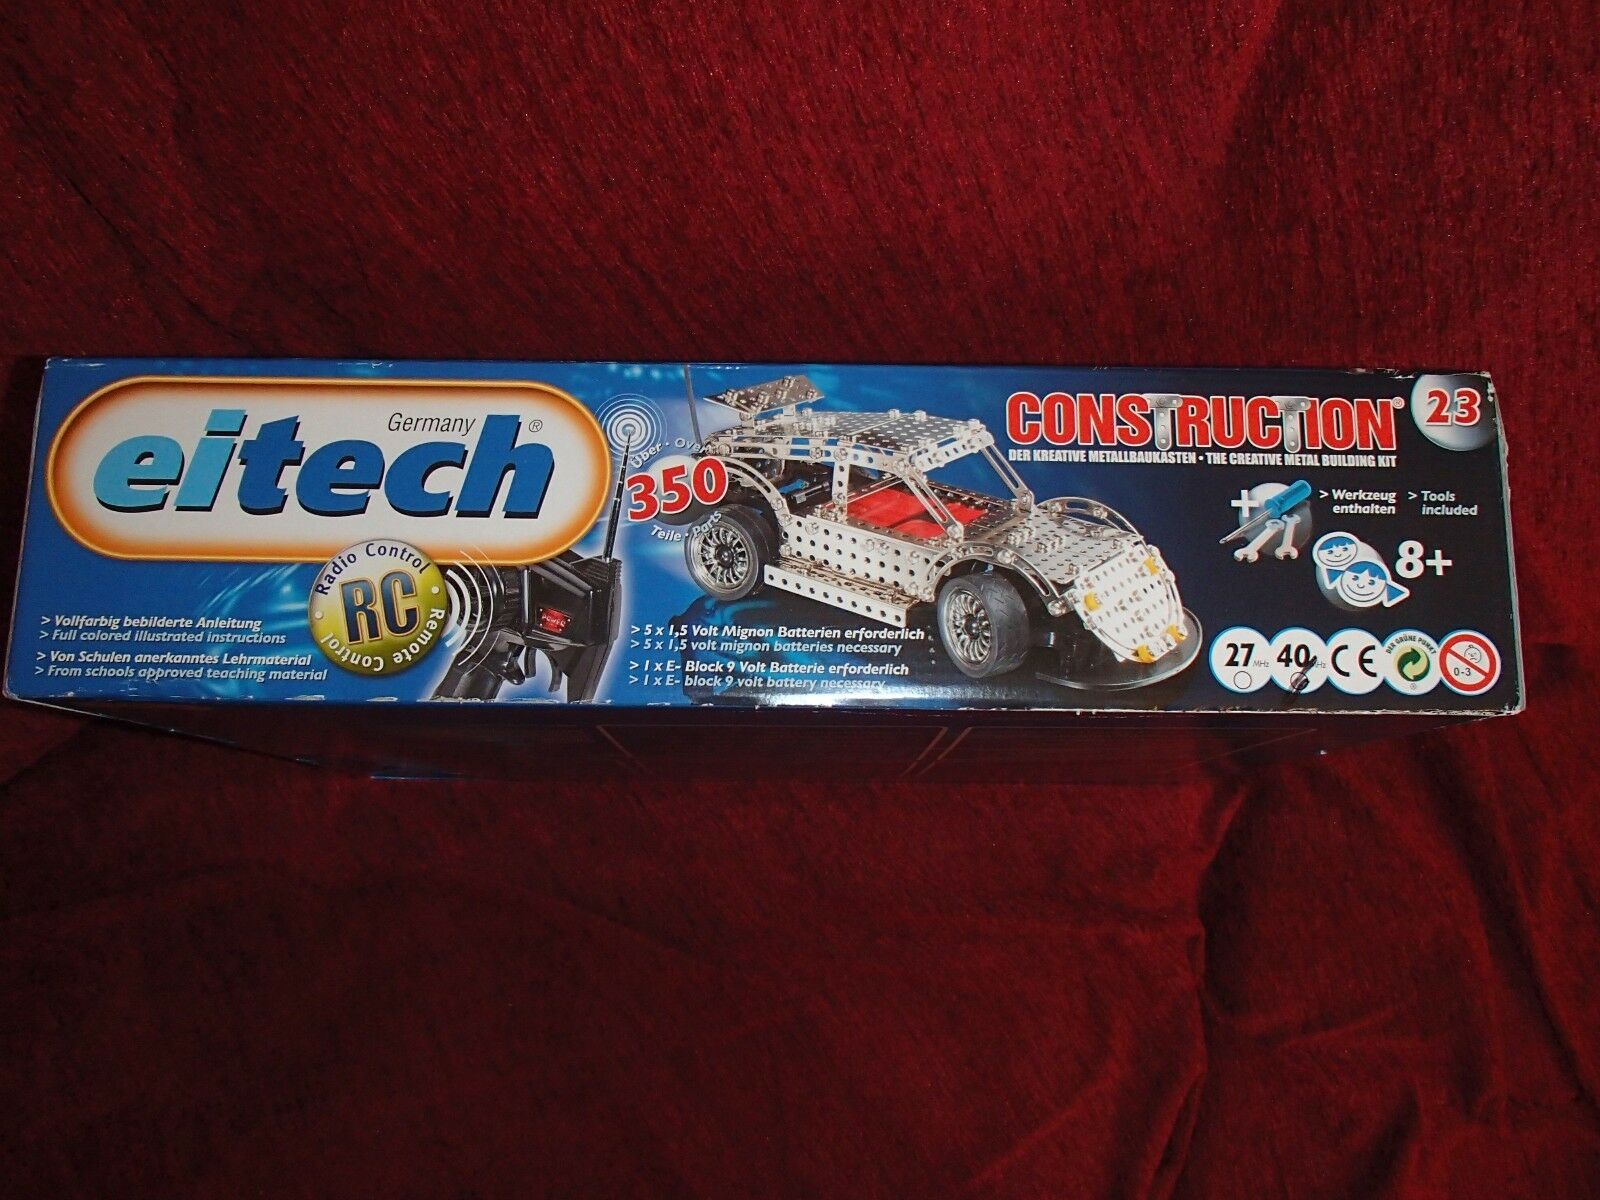 EITECH EITECH EITECH Metal Racing Car Construction No.23 With Remote Control 3f5445